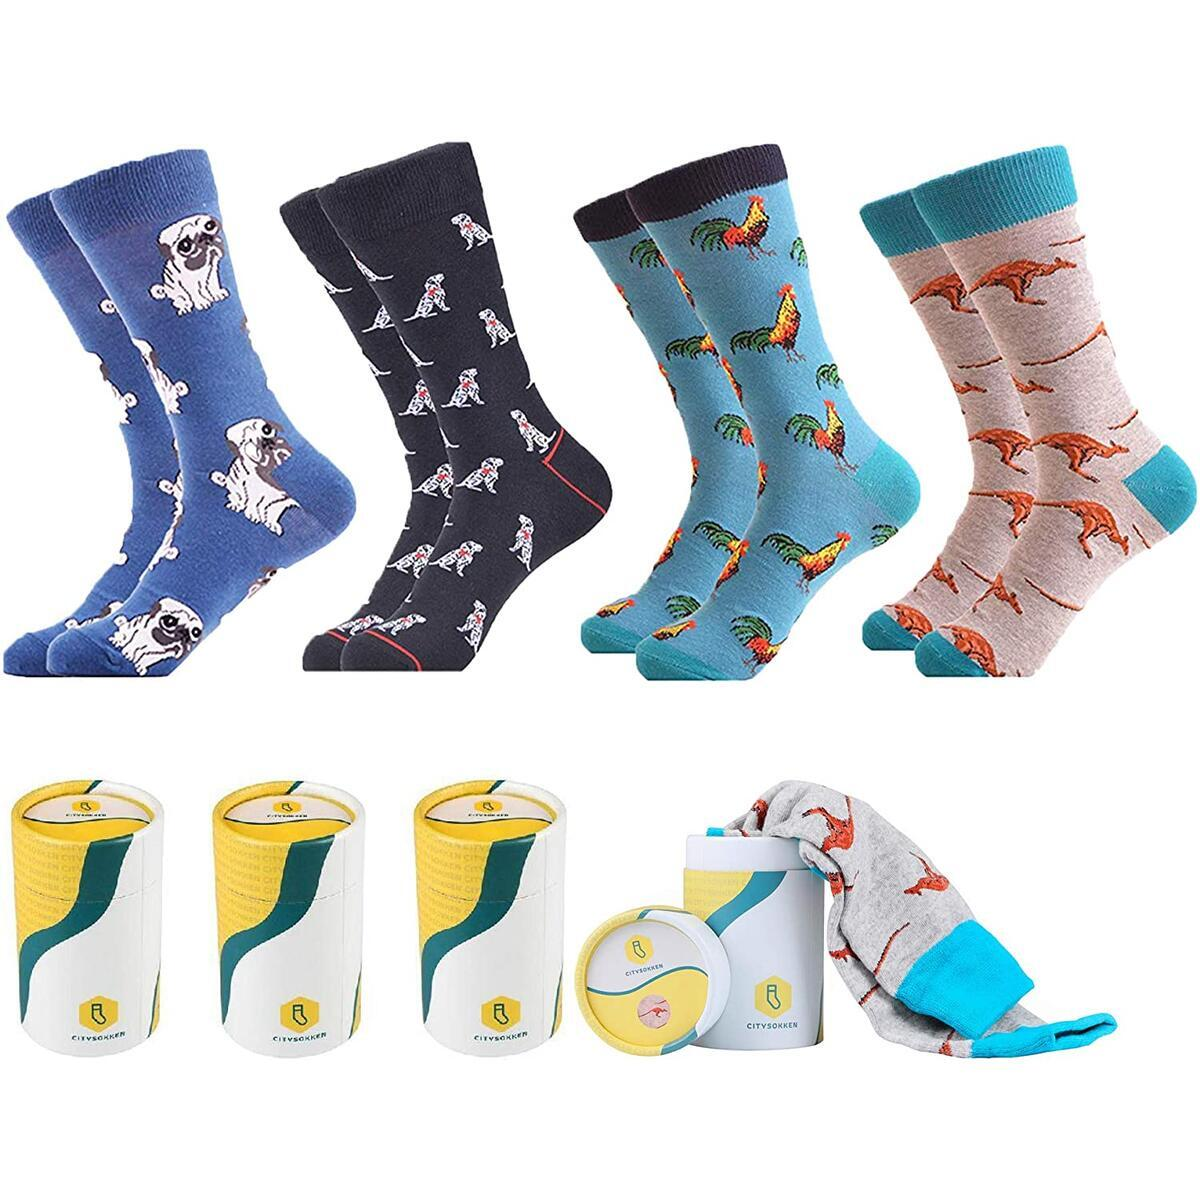 Premium Quality Mens Colorful Fun Socks | by CitySokken. With Hard Case Boxes. Rebate valid only for color: Wild-1_b